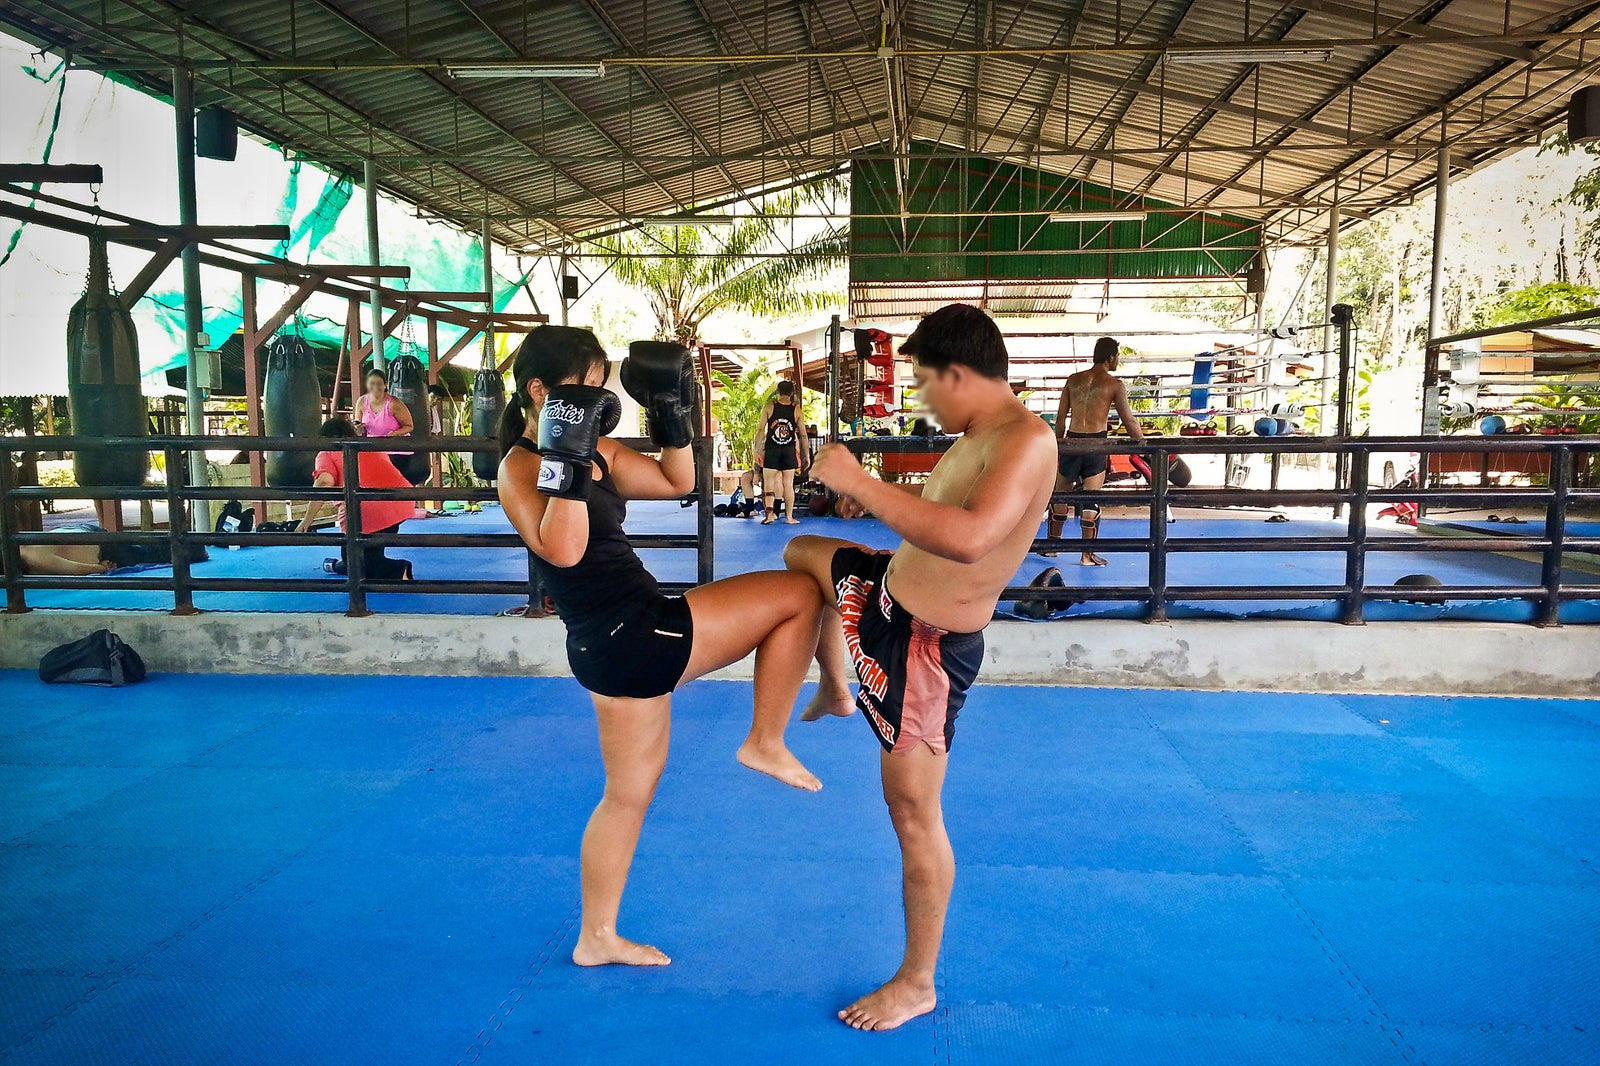 The Course at a Muay Thai Camp with Fitness in Thailand for Student